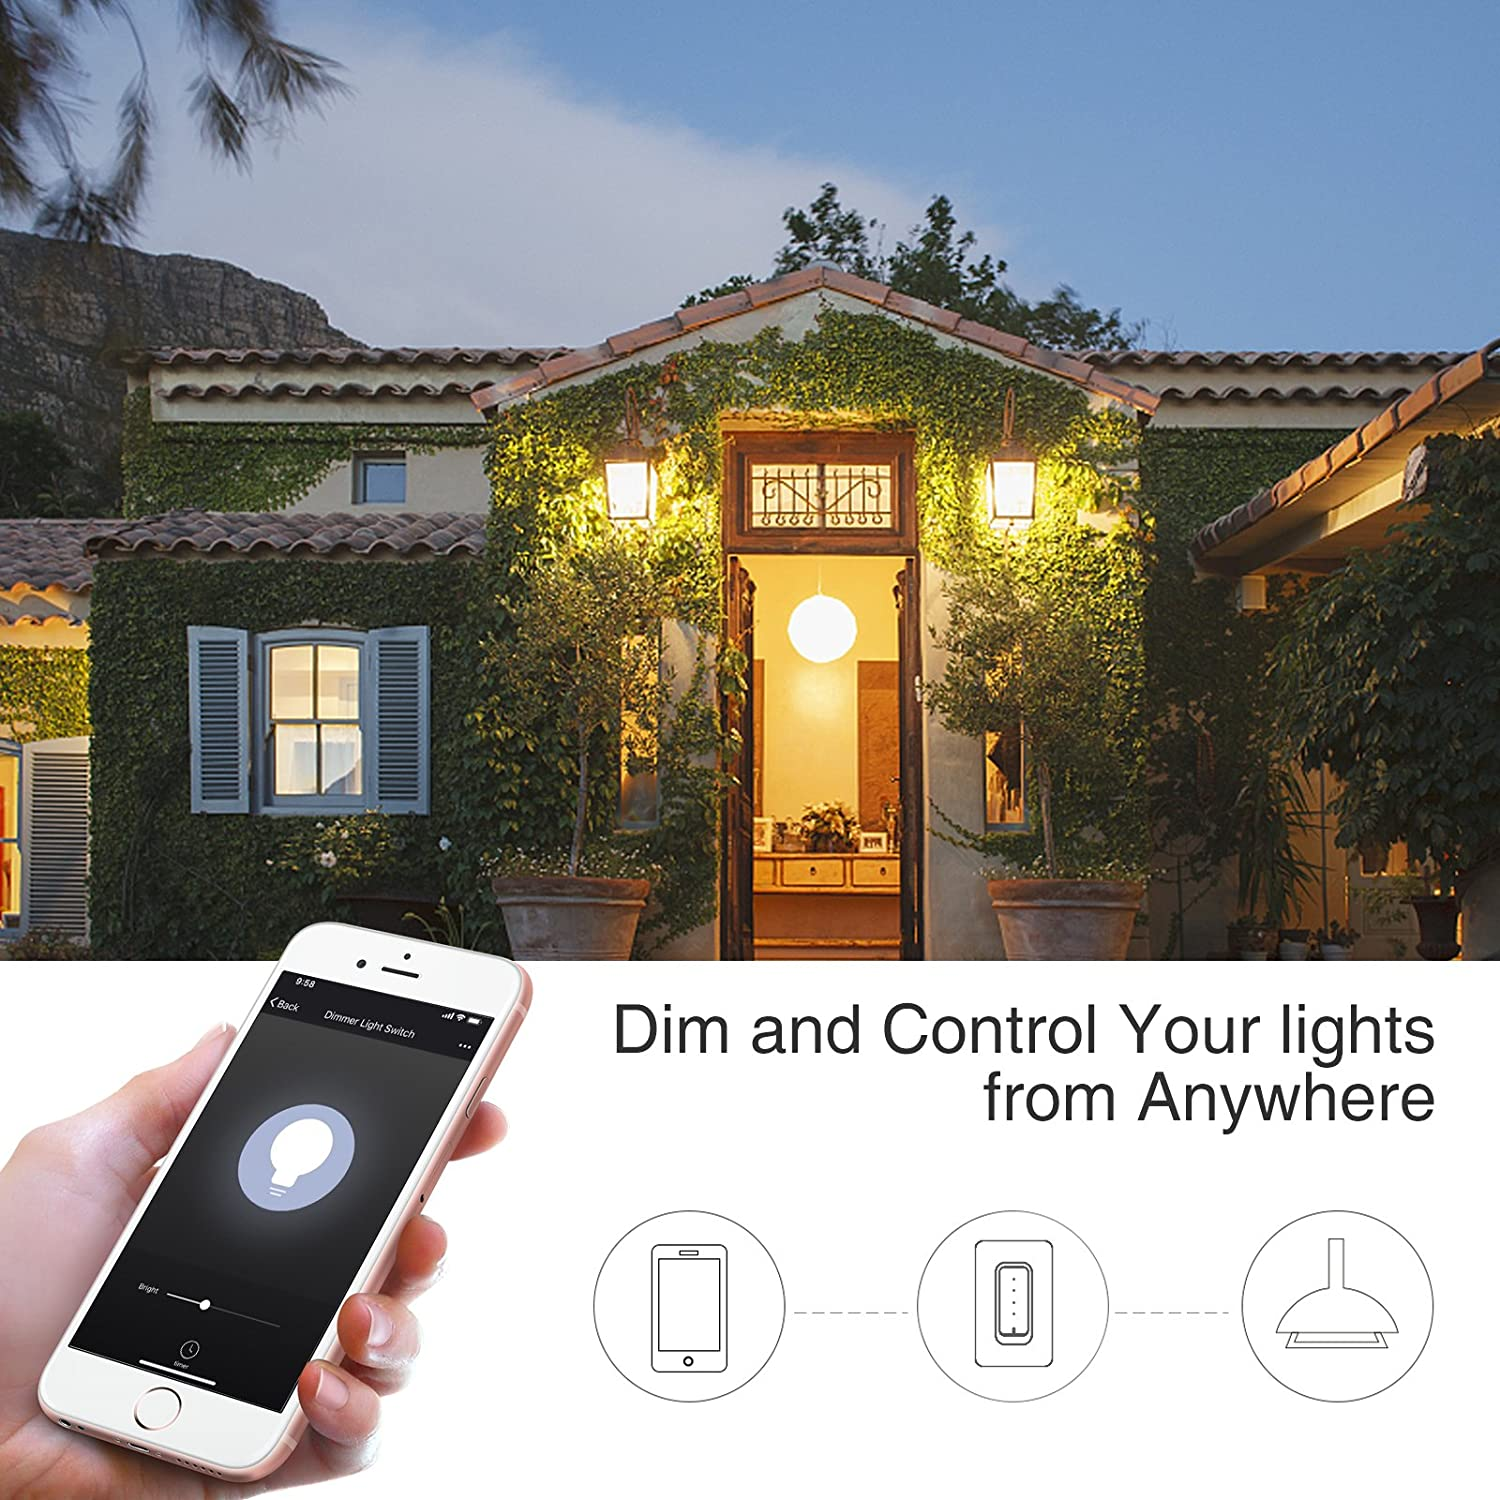 Oittm Dimmer Wi Fi Light Switch Smart Lighting Replacing Single Pole Control From Anywhere No Hub Required 400w Incandescent 150w Led Replace